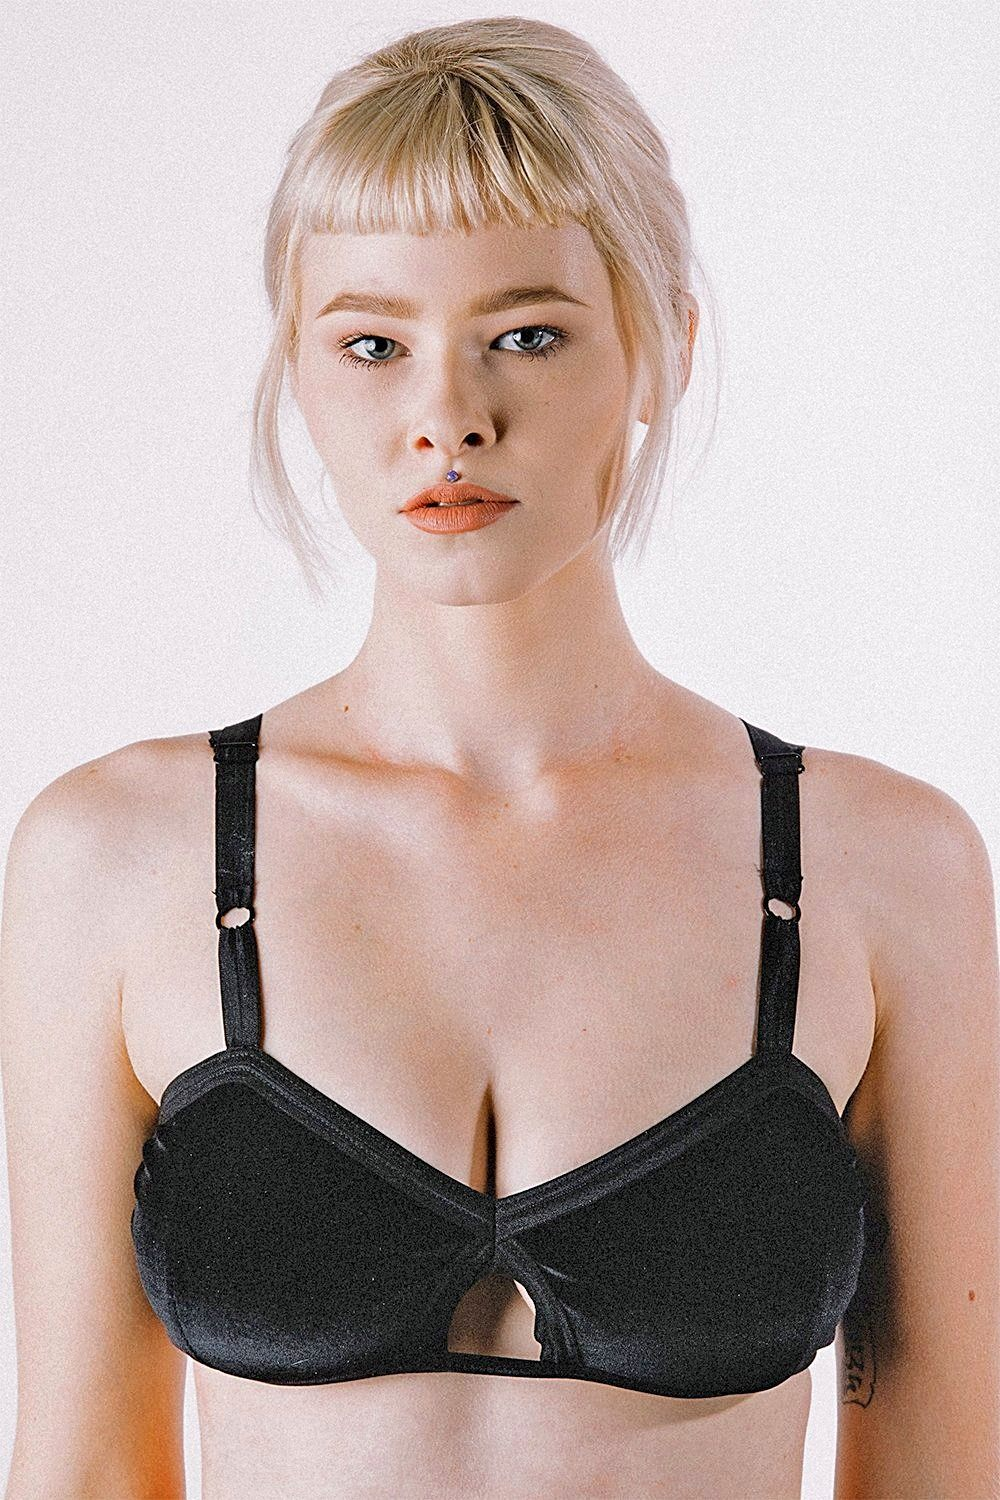 Onyx Velvet Bralette by Solstice Intimates・ALMOST GONE, Intimates, solstice, BACKBITE